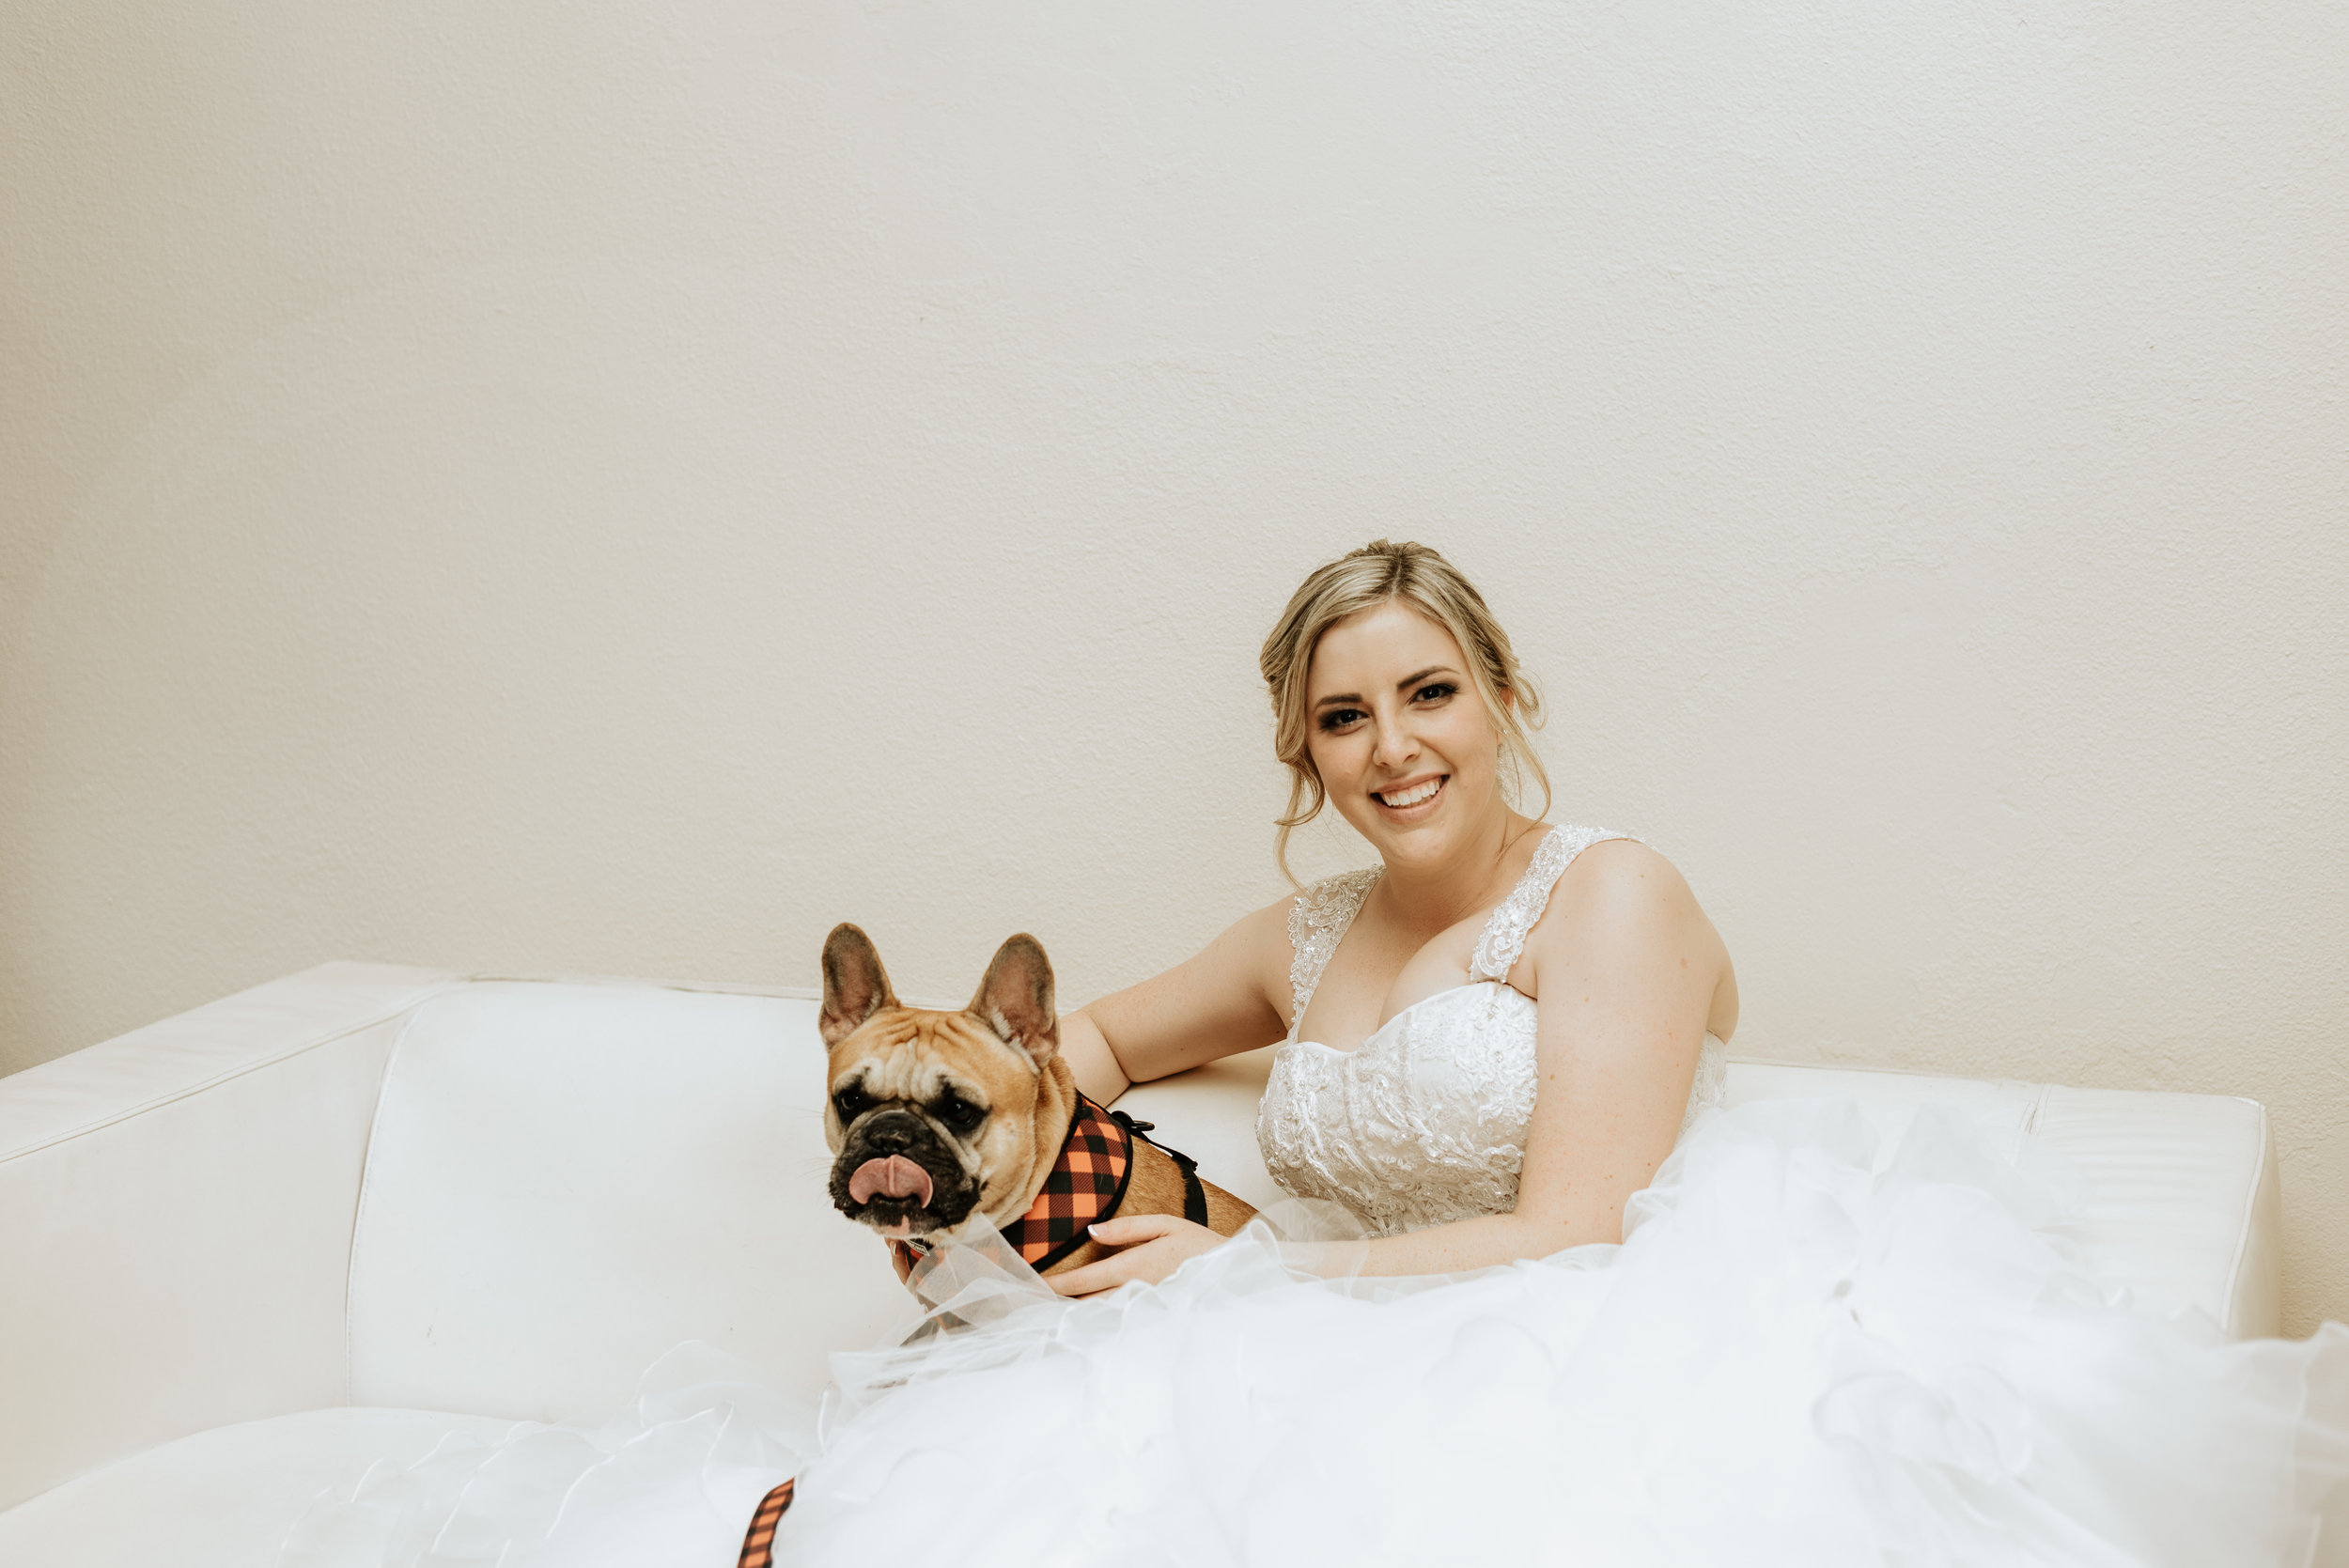 Lauren-Bobby-Wedding-Previews-7885.jpg